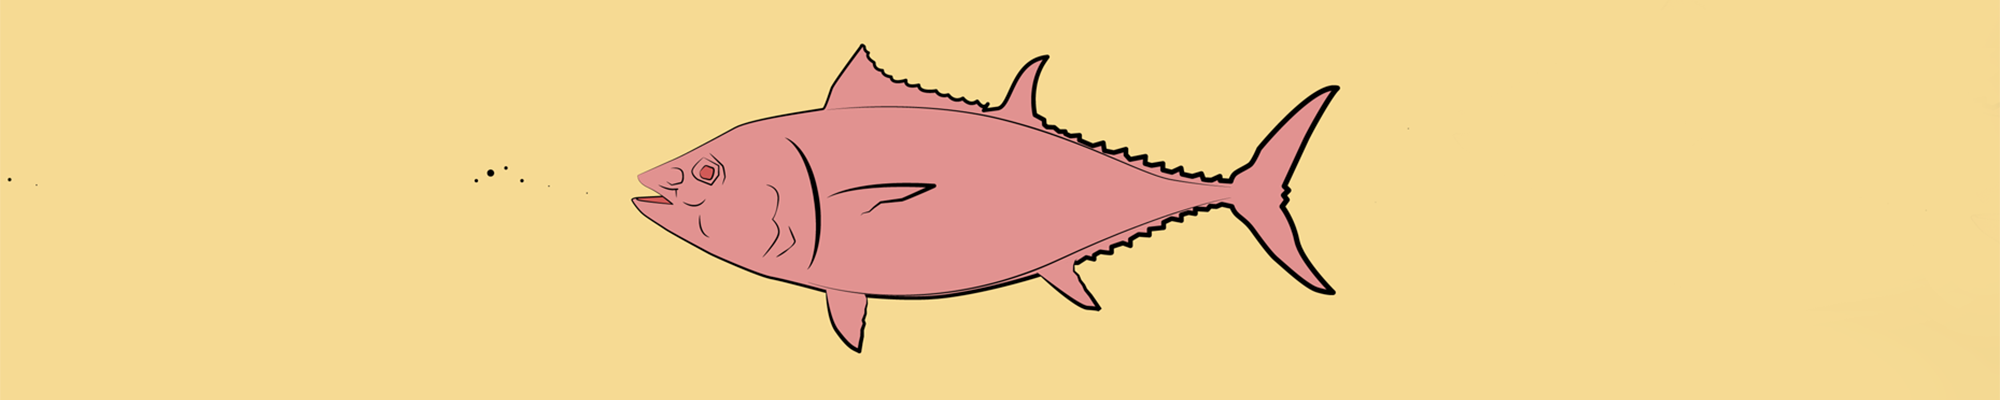 Graphic illustration of a tuna